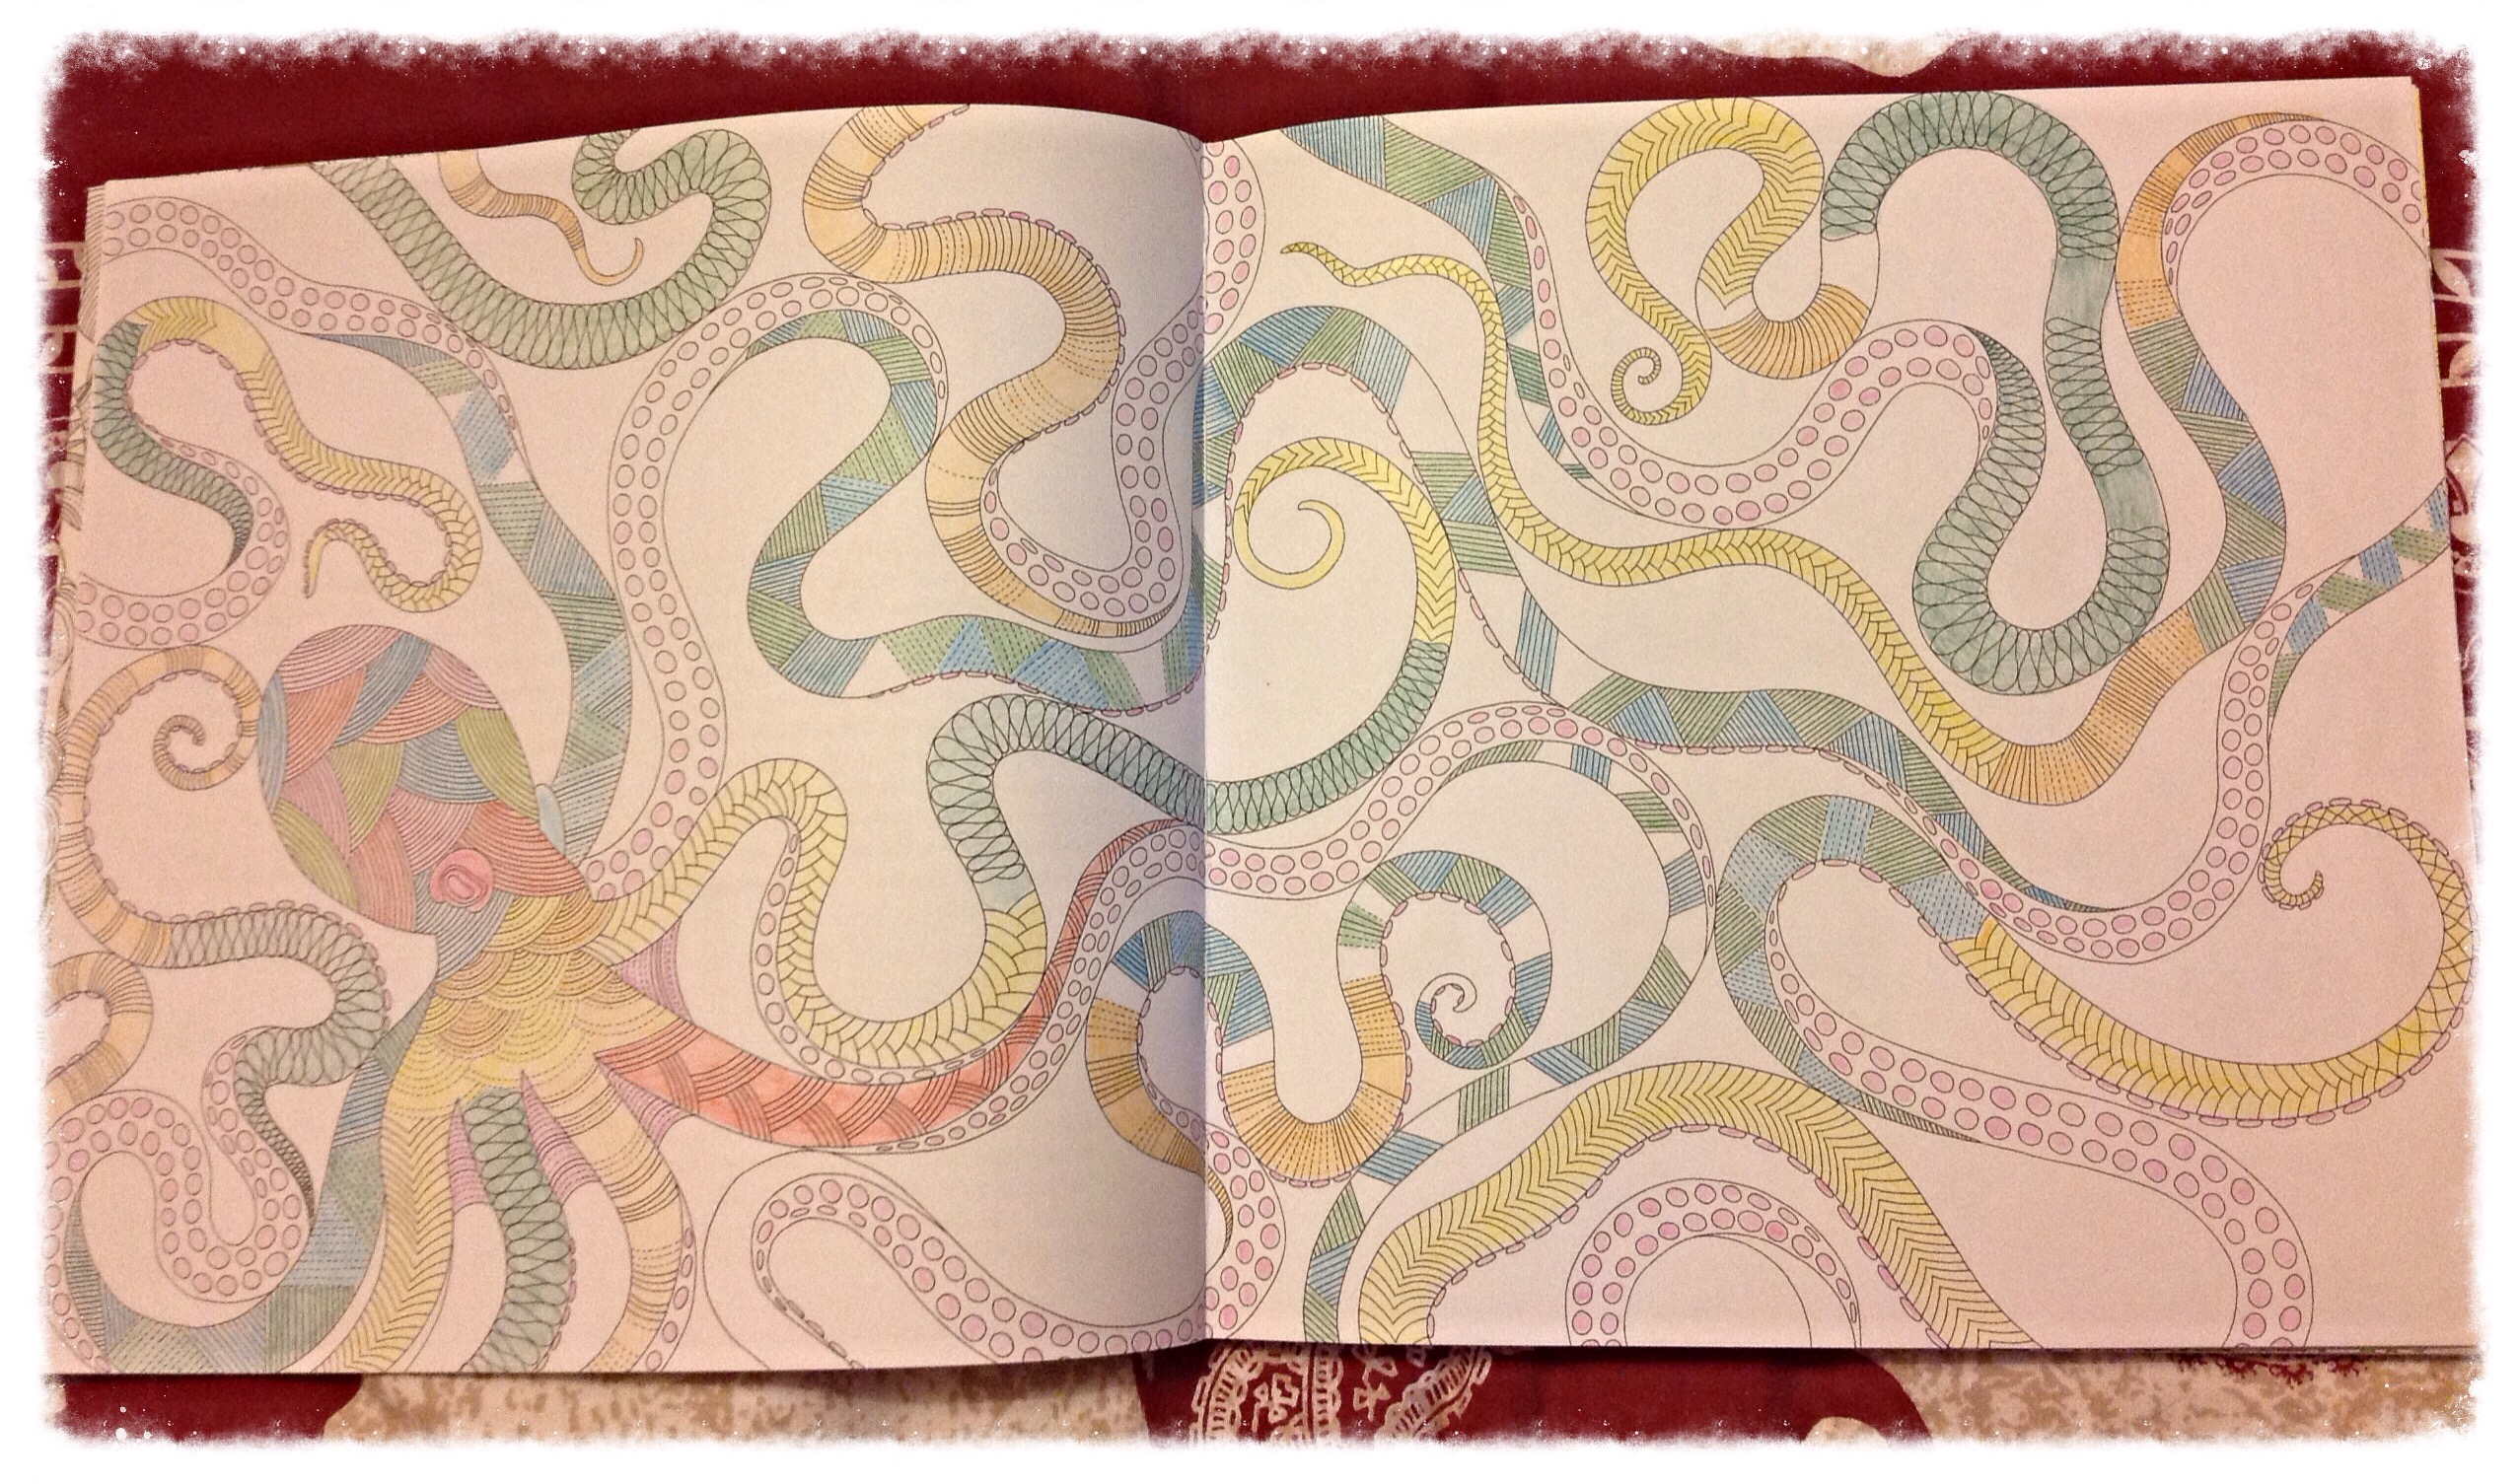 The Paper Used To Make This Colouring Book Is Thick And Of Good Quality So Using Felt Tip Pens Fine As There No Bleed Through Page Onto Another